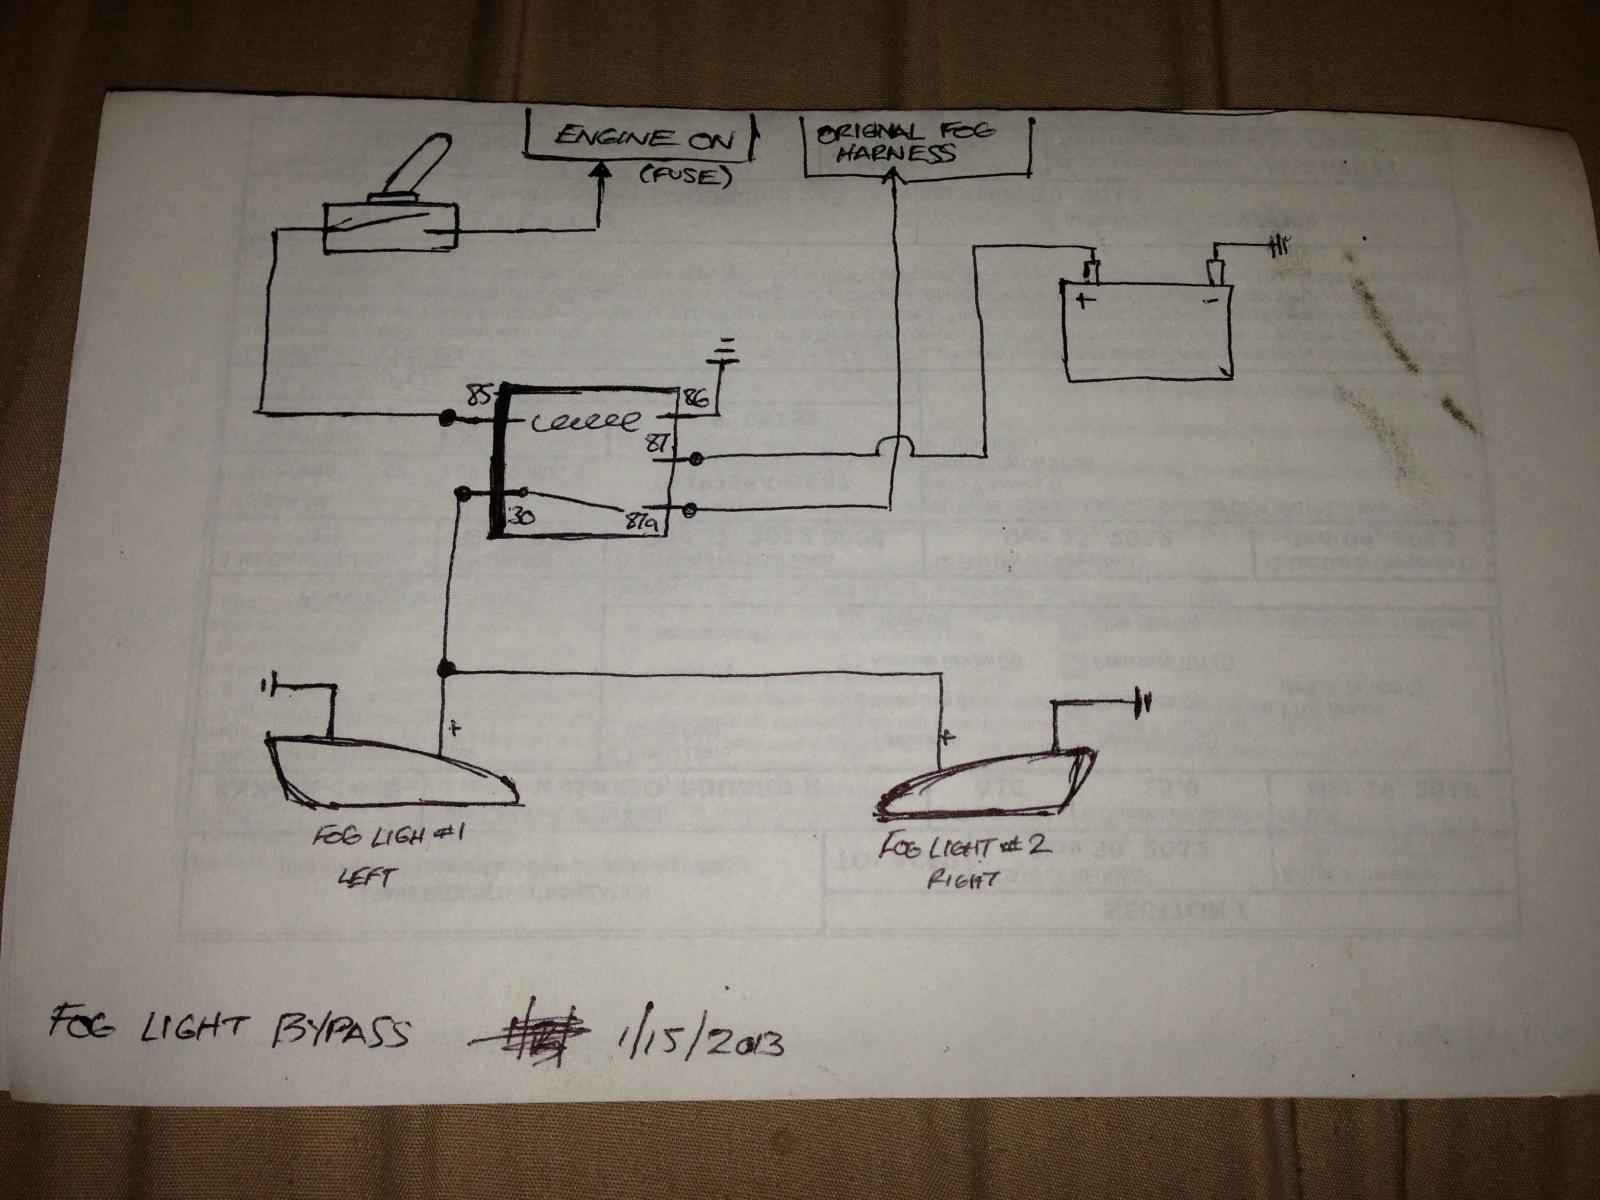 simple wiring diagram to bypass foglights works w o headlights or w rh optimaforums com Kia Sportage Wiring Diagrams Kia Sportage Wiring Diagram PDF